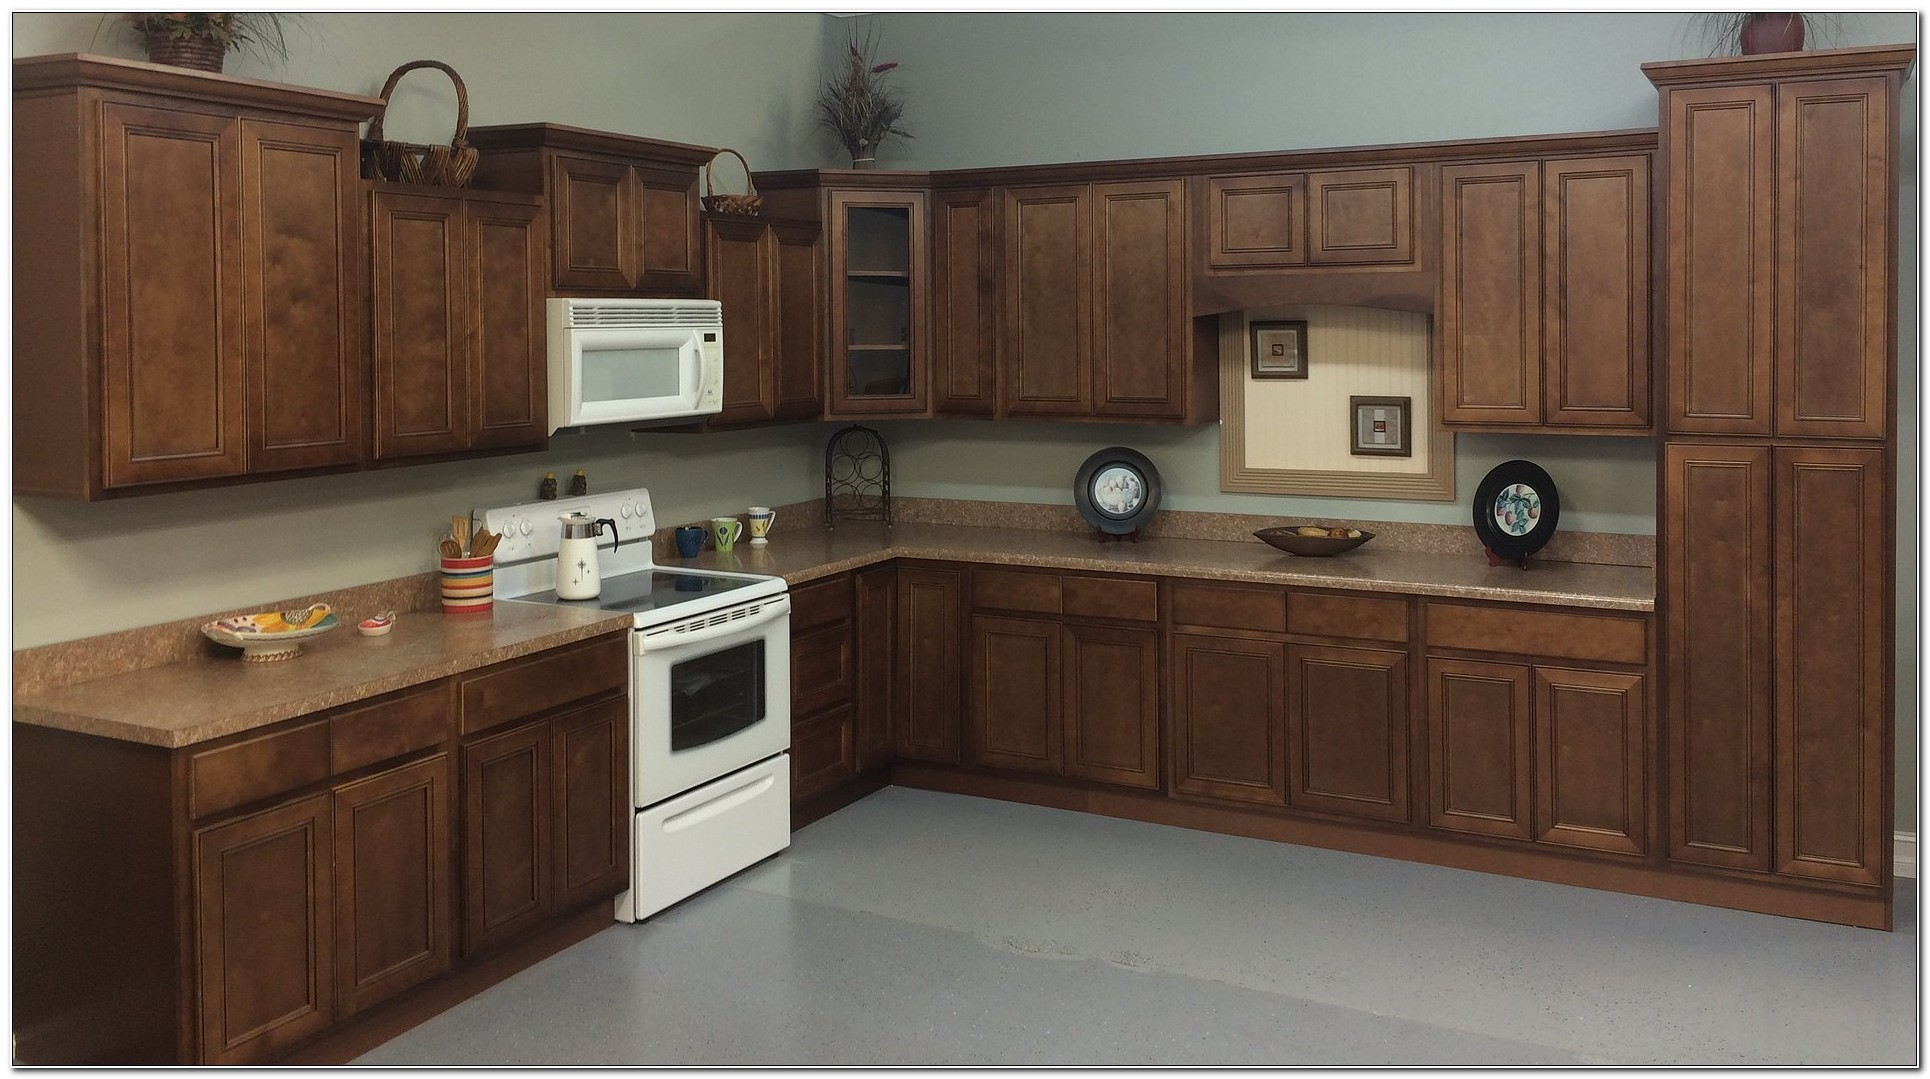 Cnc Kitchen Cabinets Melbourne Fl